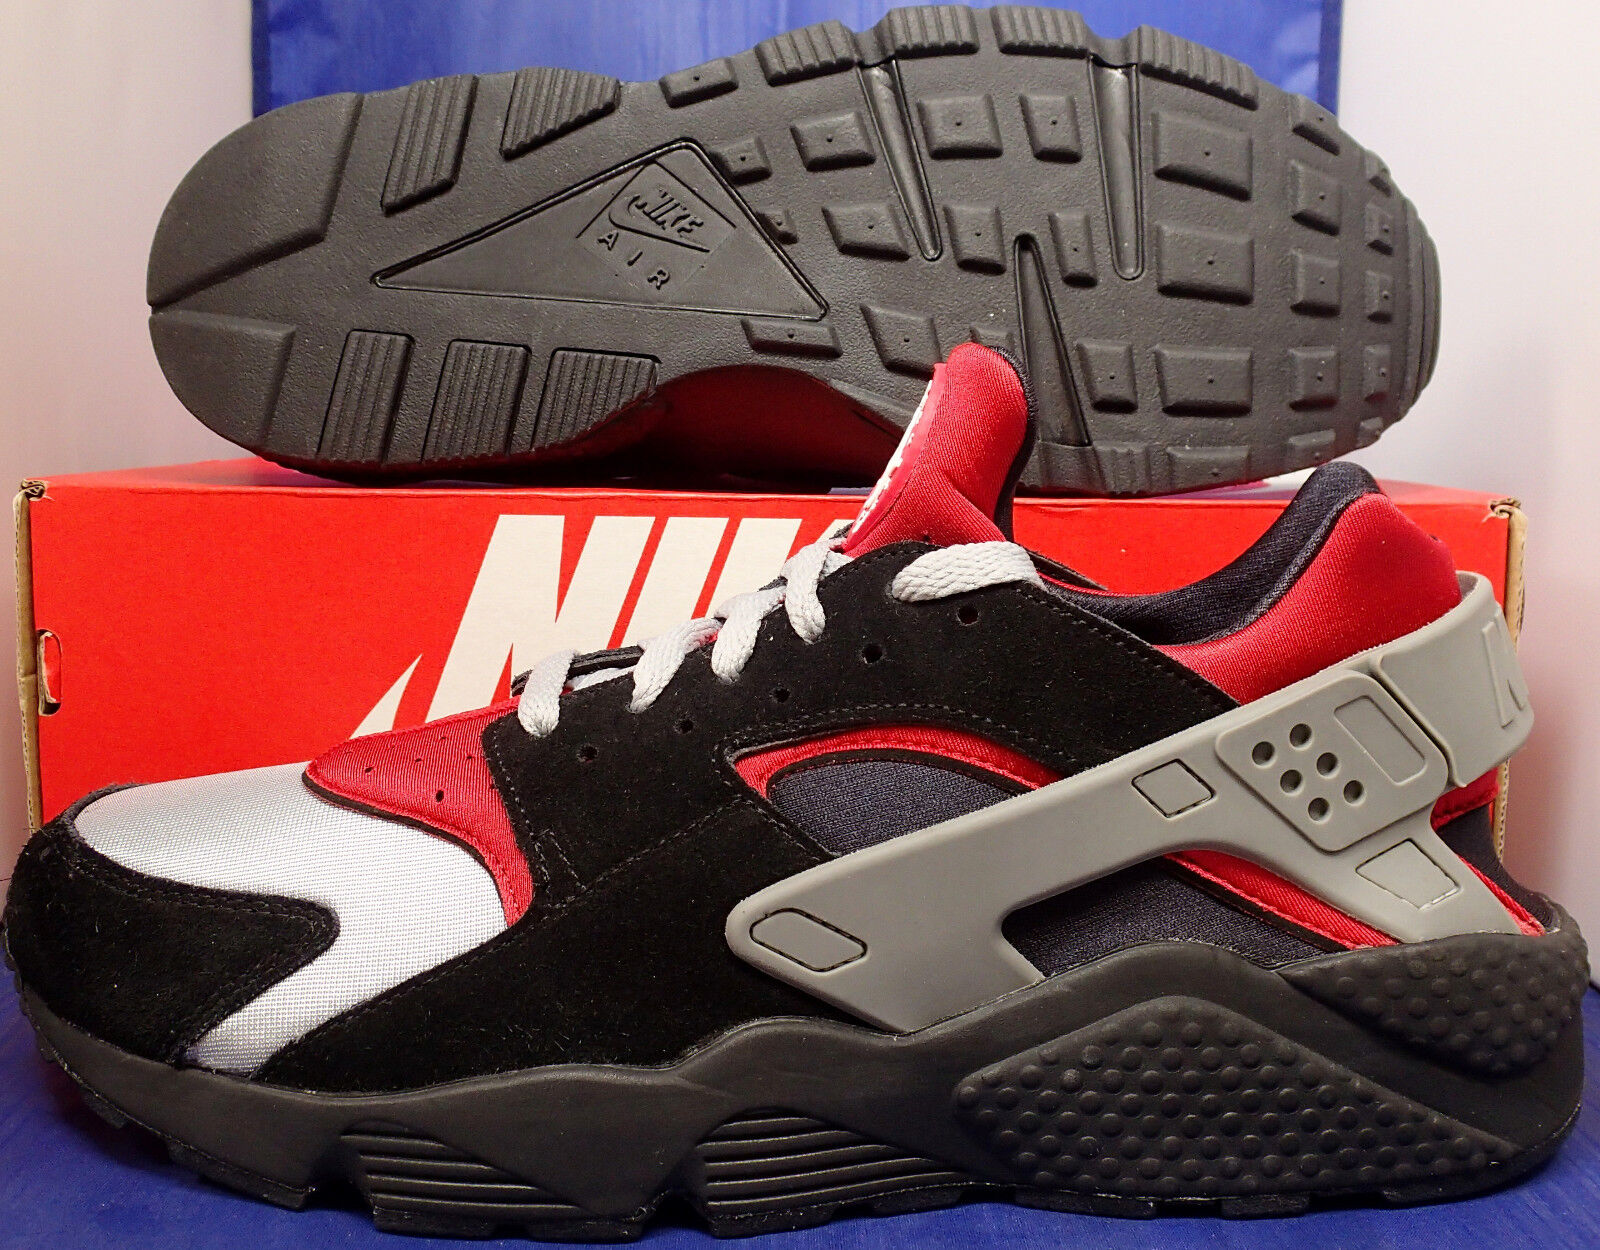 Nike Air Huarache Run iD Black Grey Red SZ 12 ( 777330-997 )